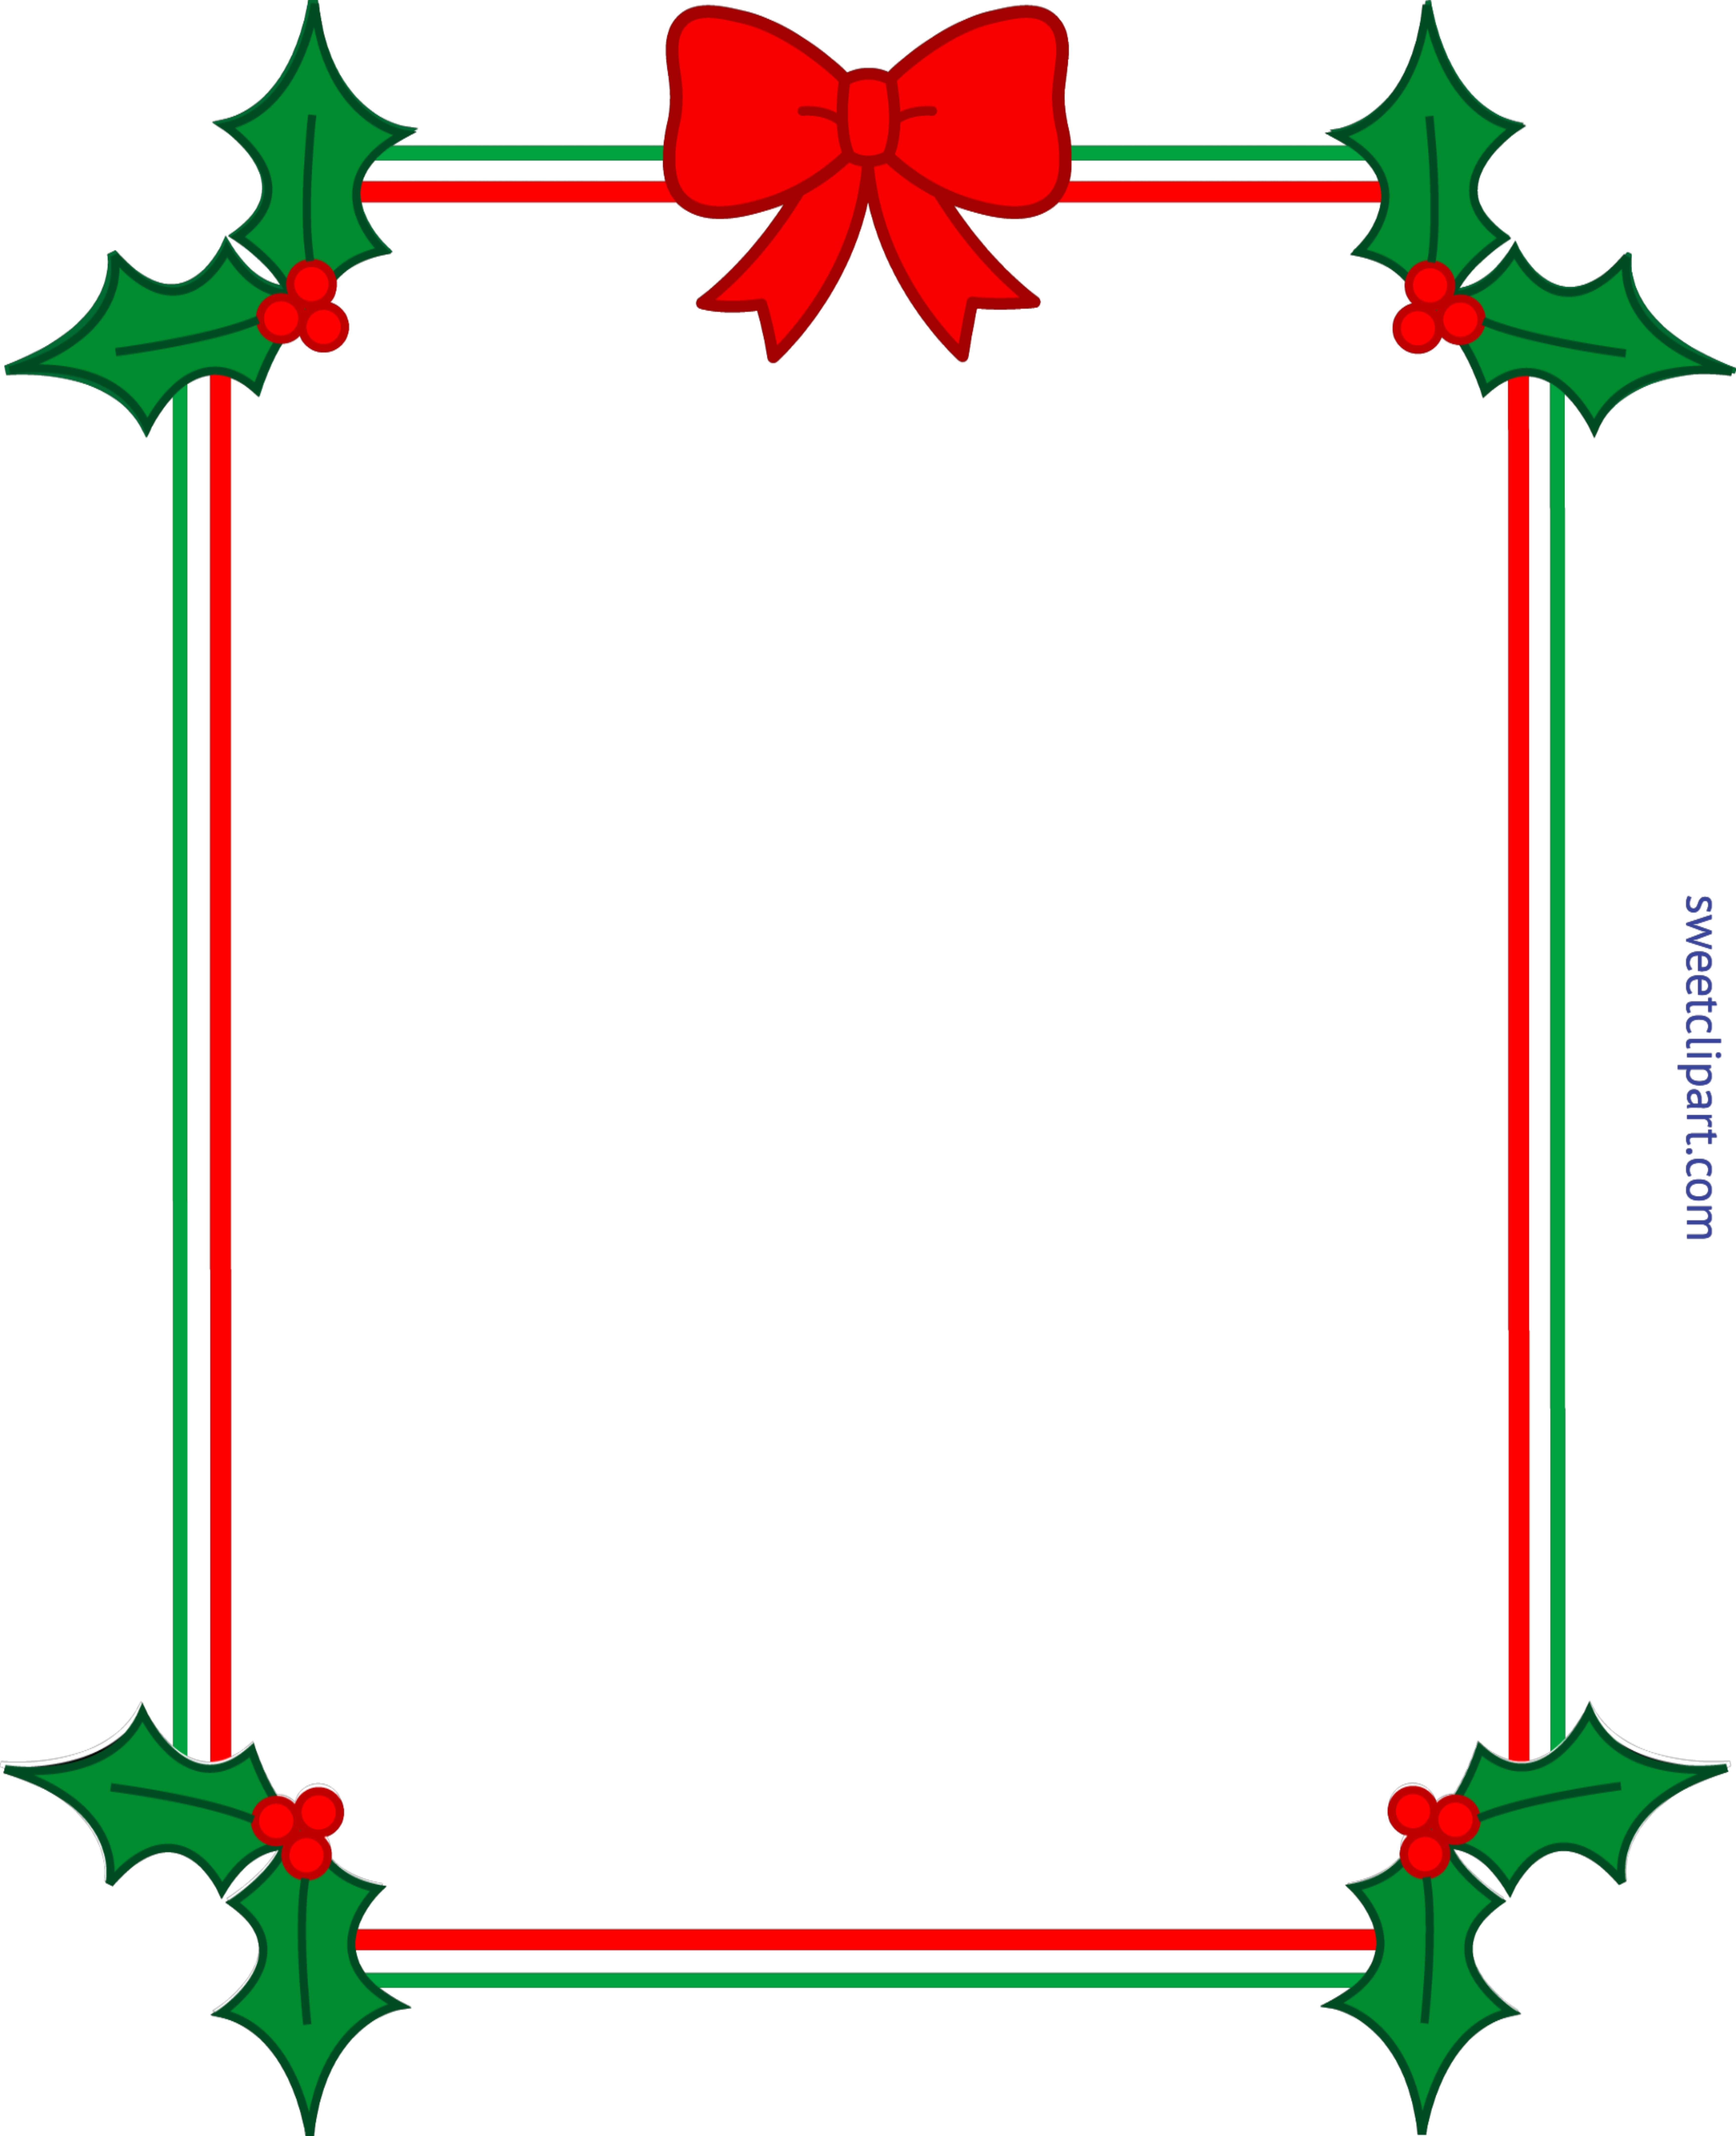 picture transparent library Boarder clipart holly. Christmas border frame ribbon